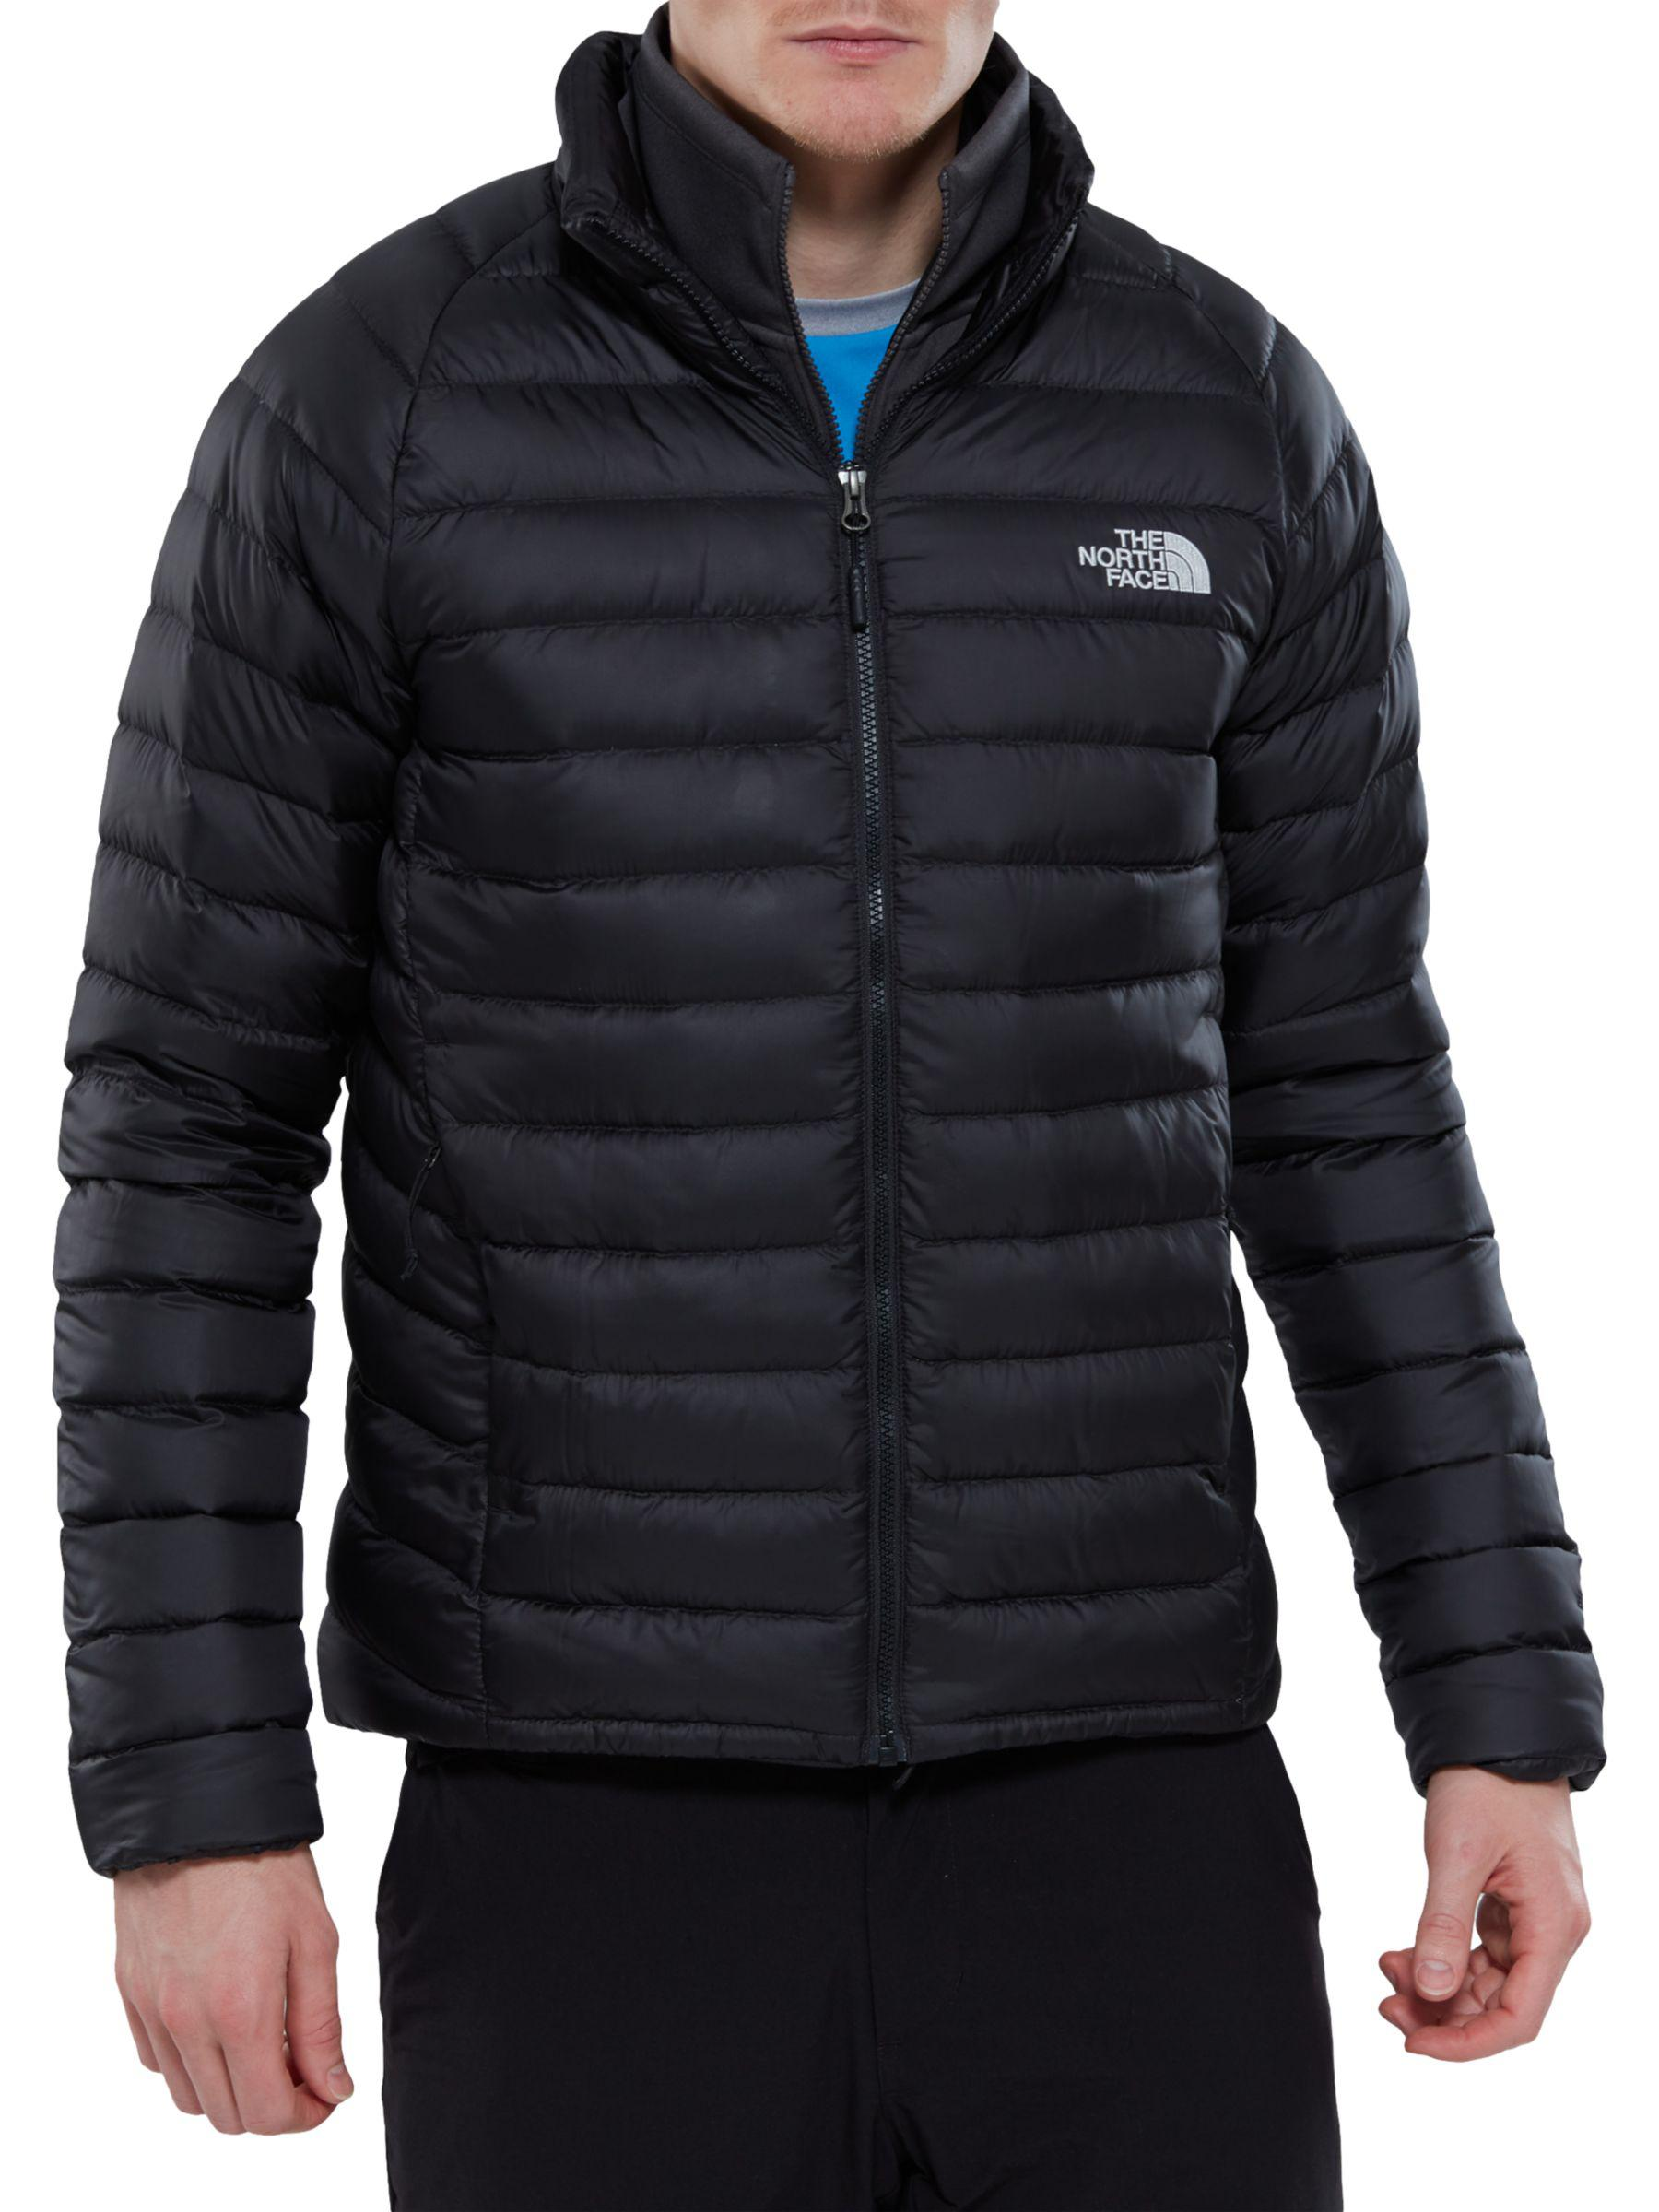 The North Face Goose Men's Waterproof Trevail Jacket in Black for Men